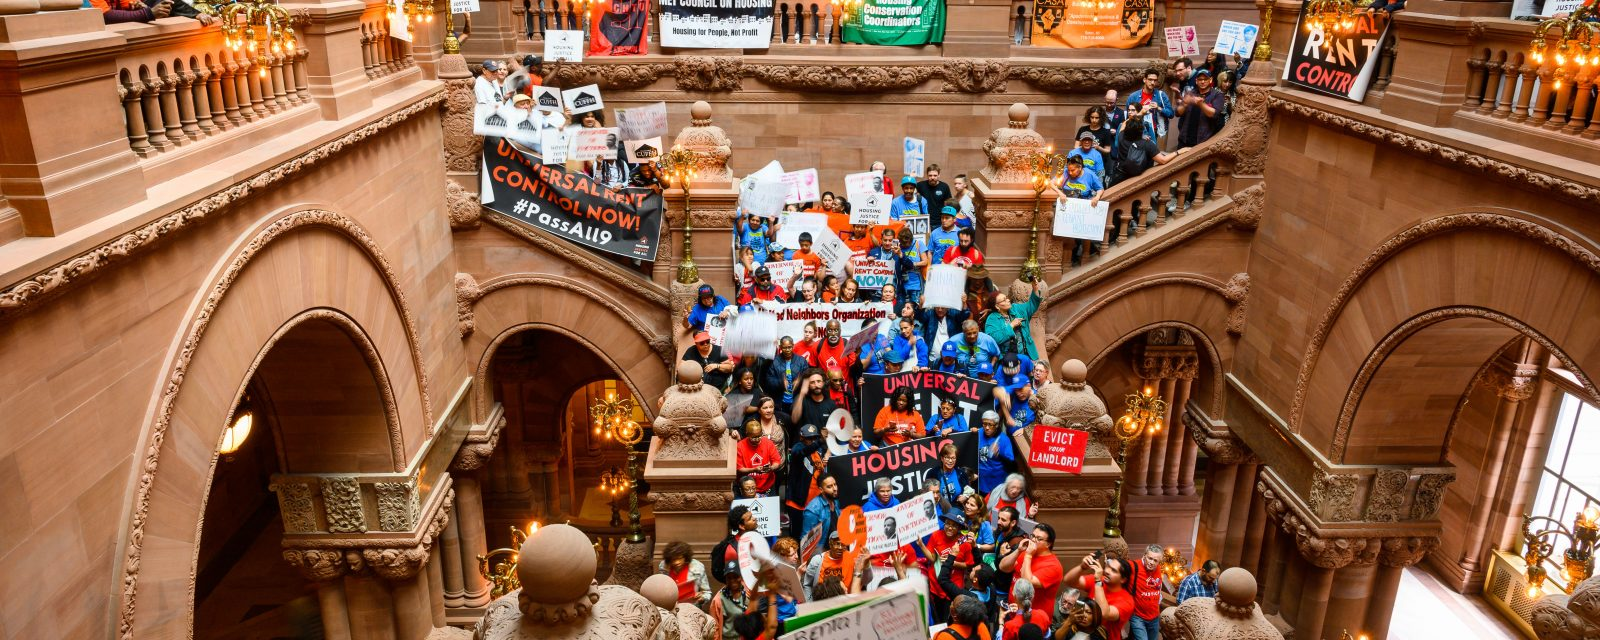 61 people were arrested June 14 in a sit-in at the state capitol demanding stronger rent laws.